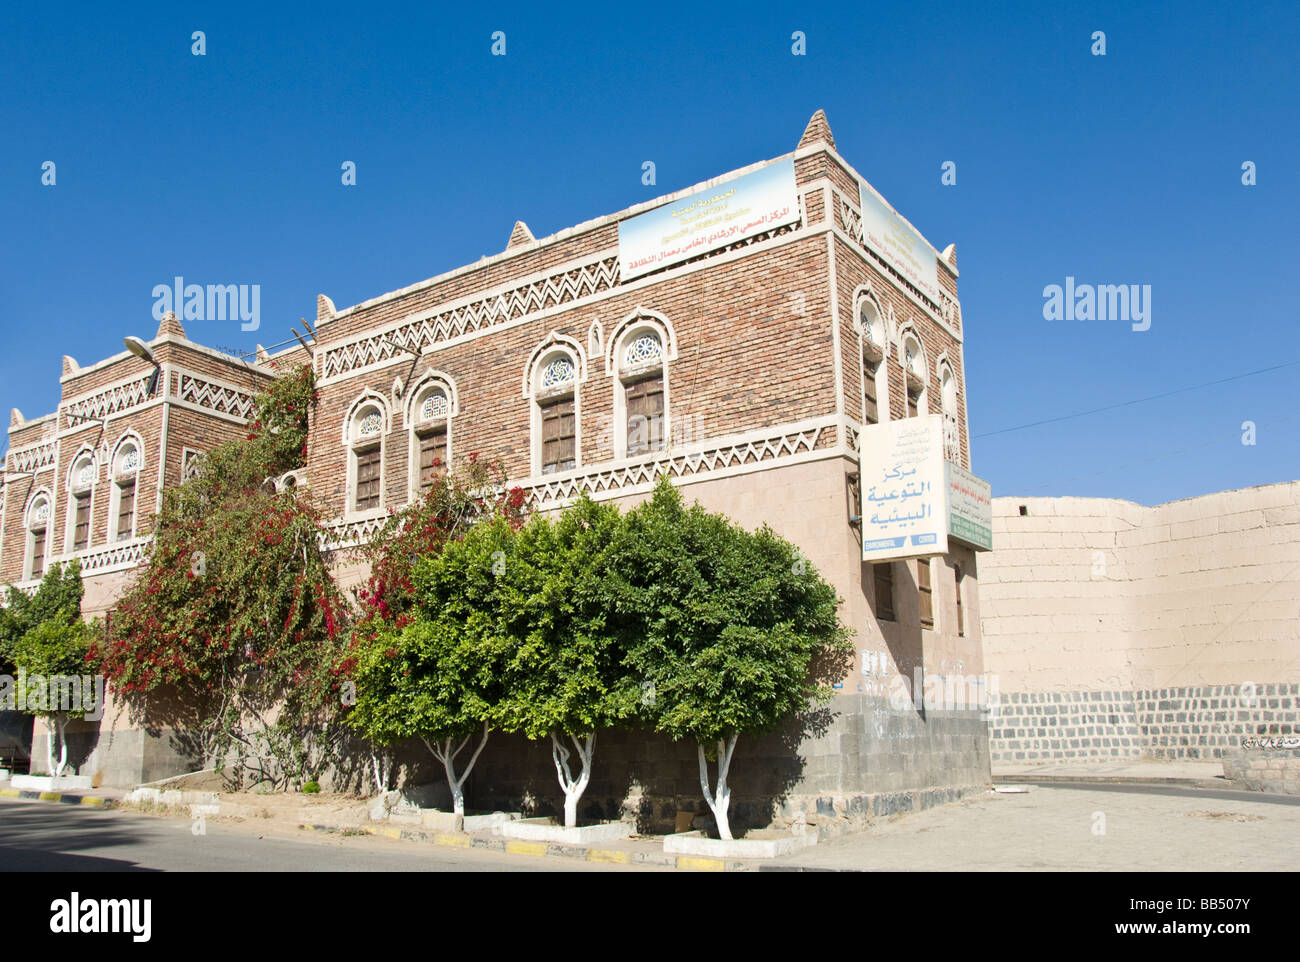 Women s health centre and environmental centre in the old town district of Sana'a Yemen - Stock Image